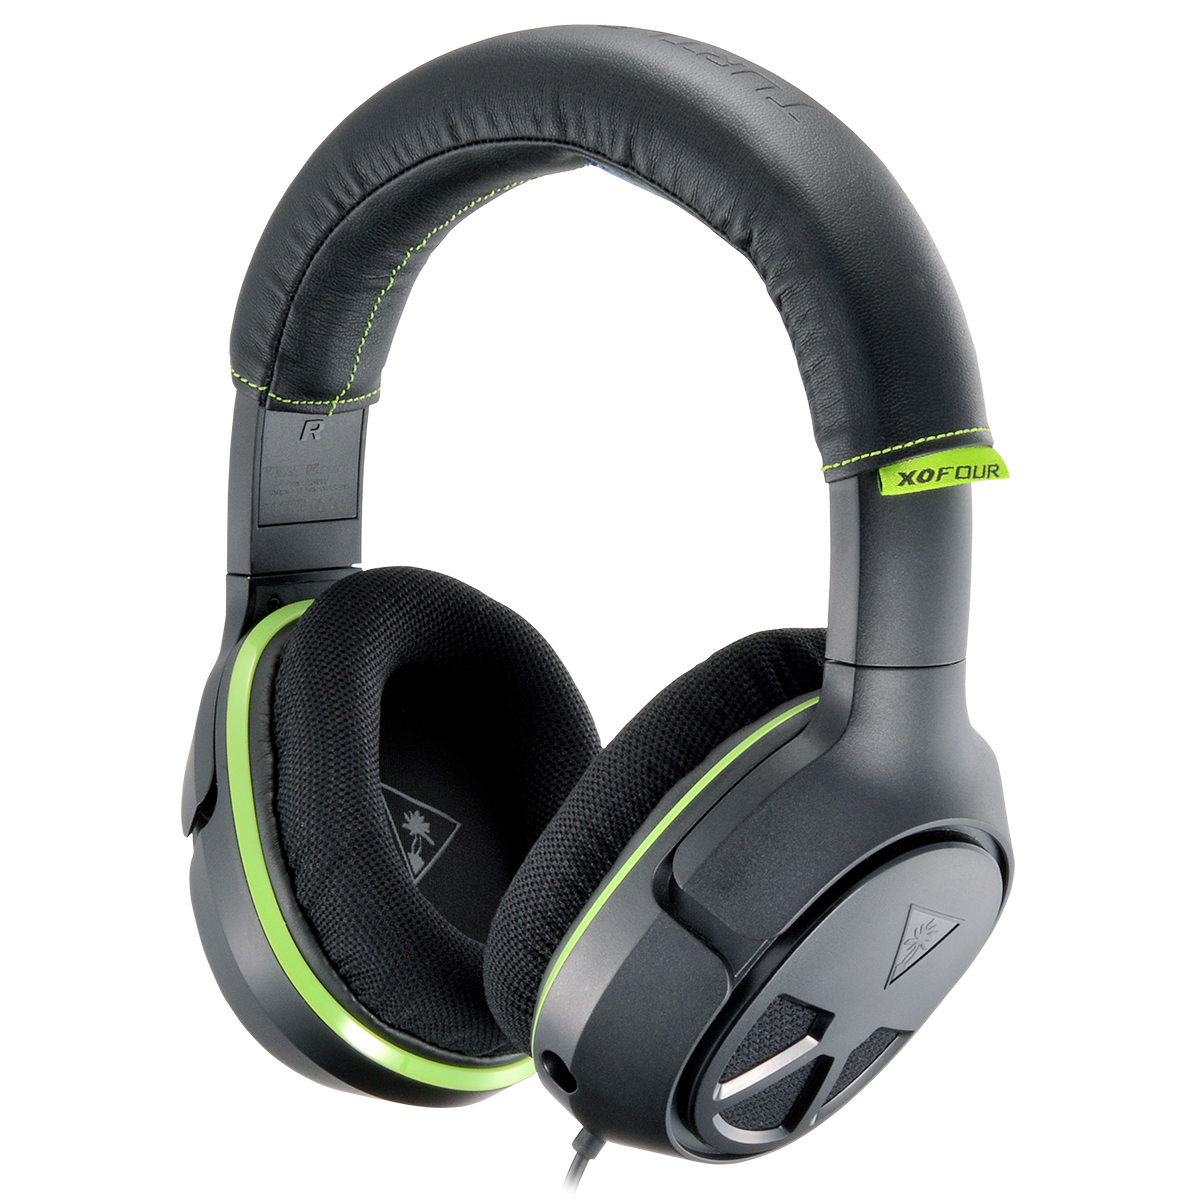 0ed8bb81b03 XO Four Stealth Gaming Headset - Turtle Beach®